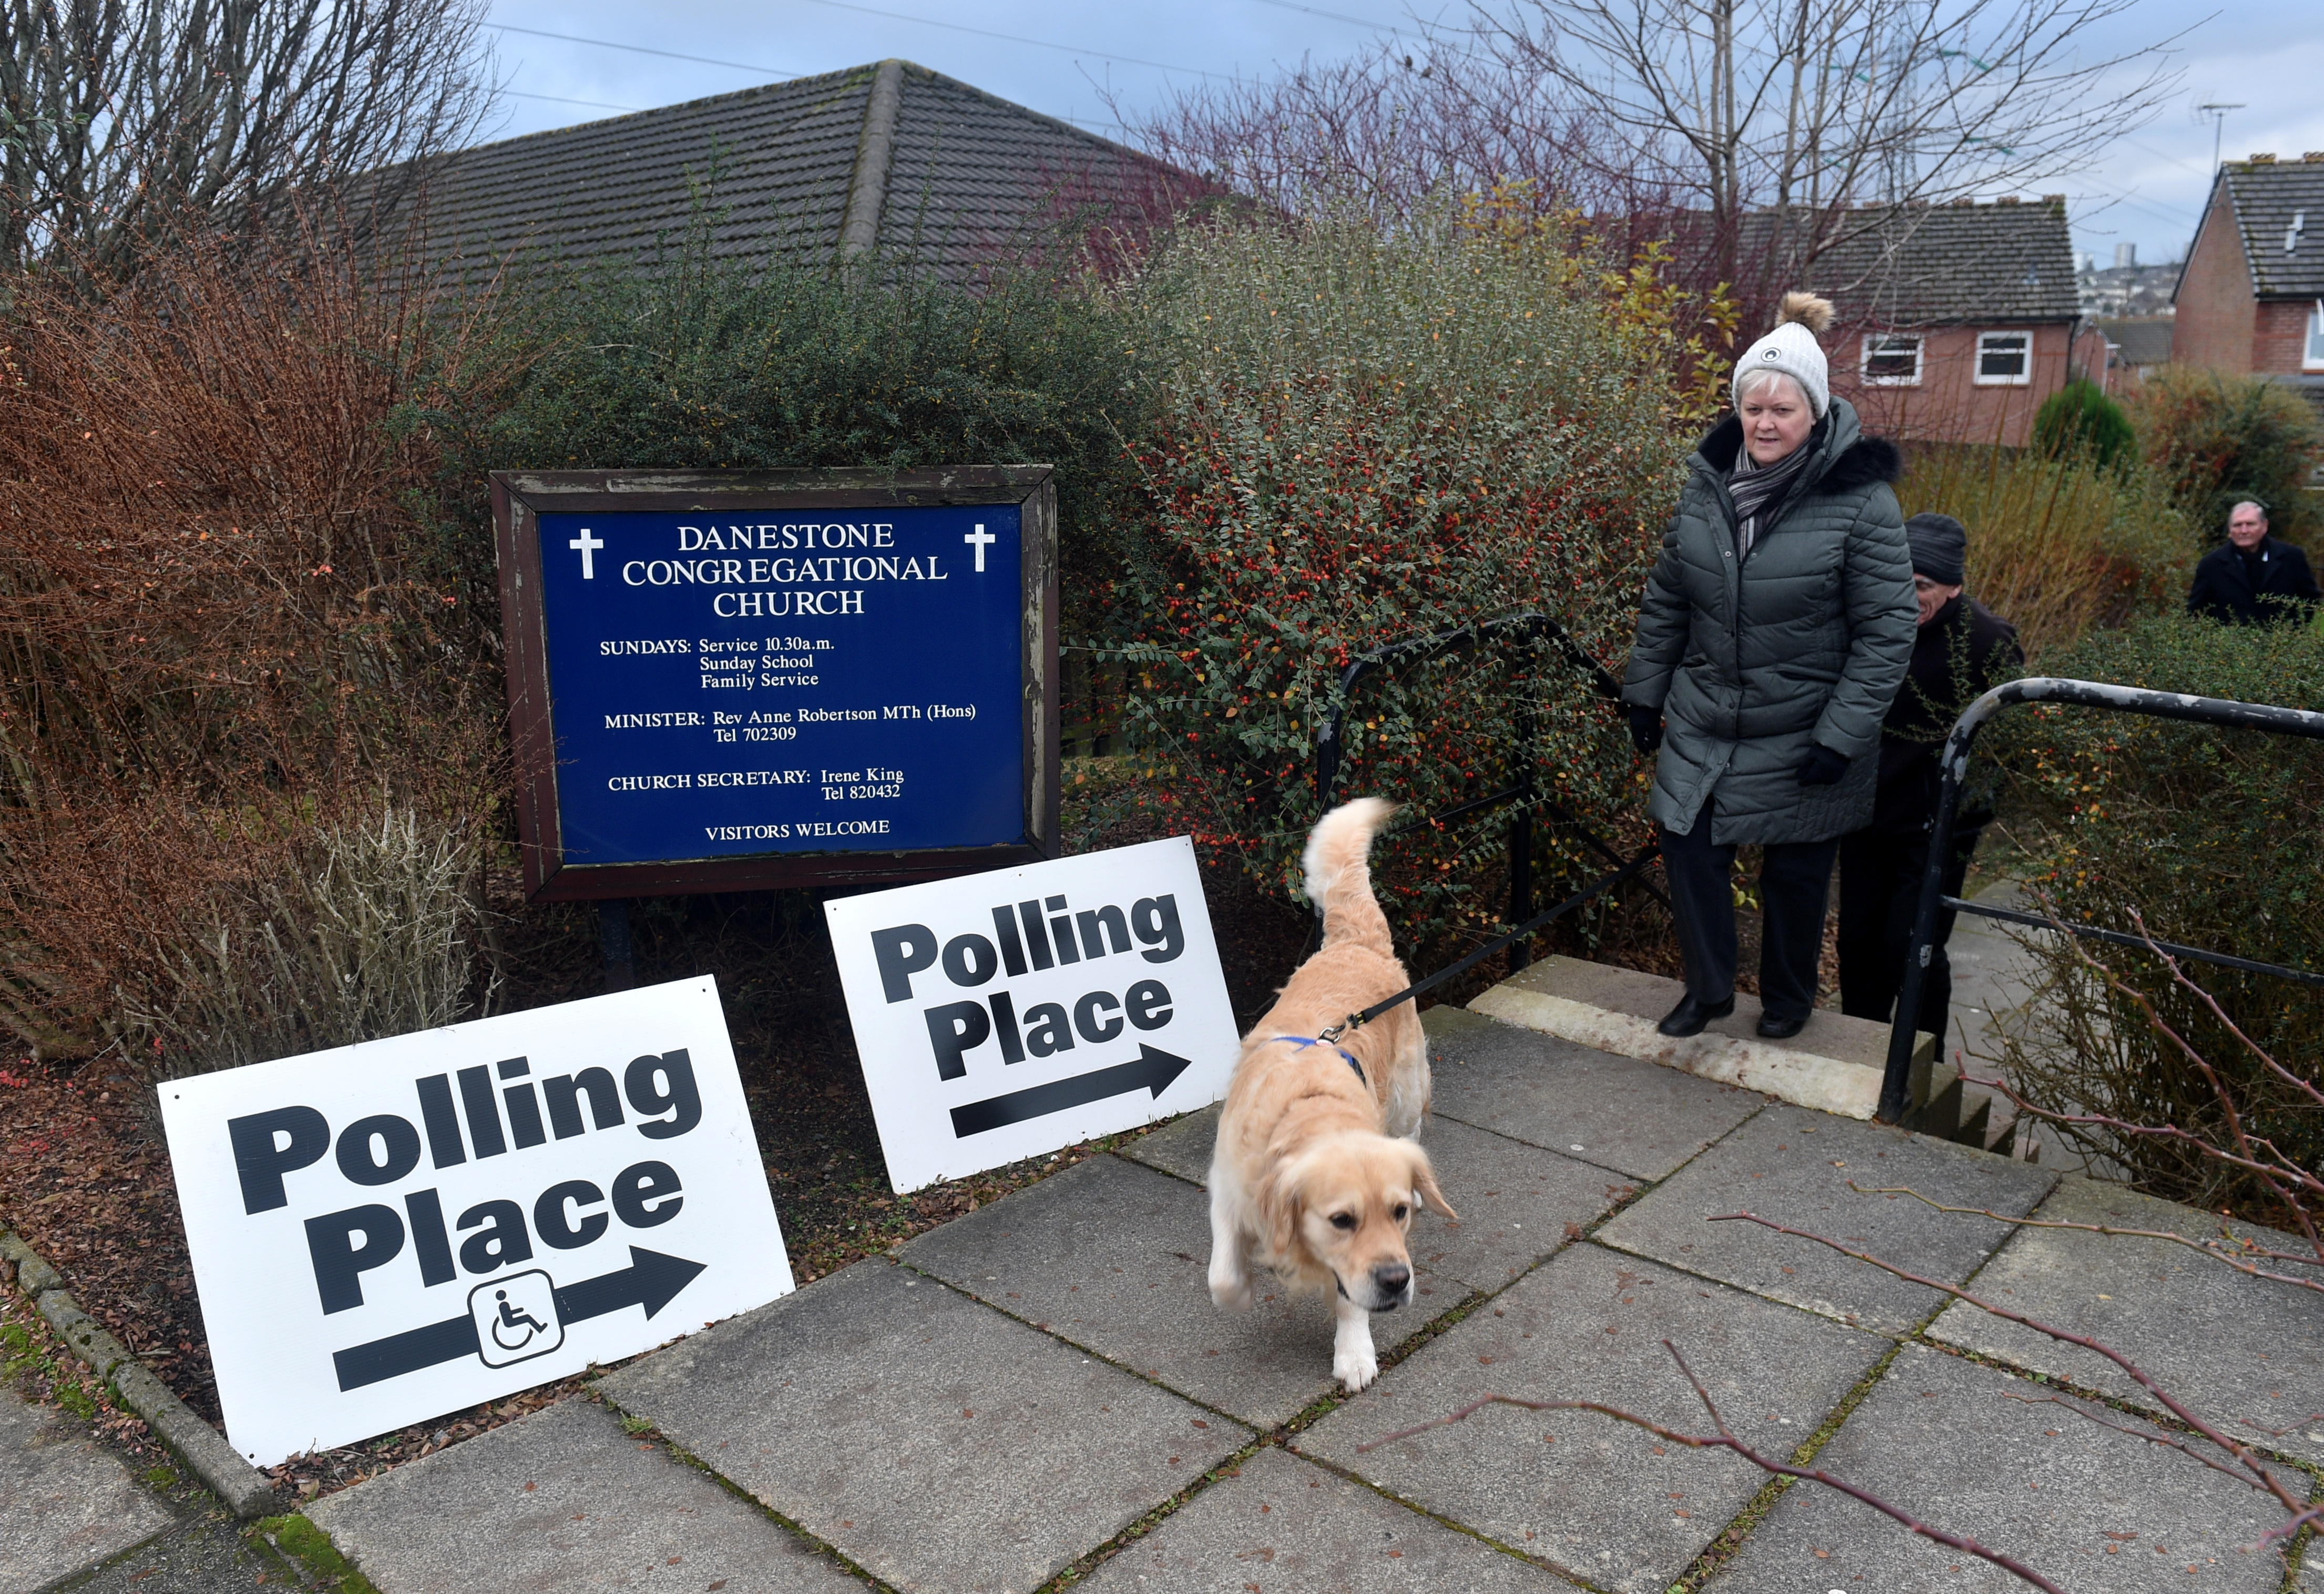 Pictured are voters at the polling station at Danestone Congregational Church, Danestone, Aberdeen. Picture by Darrell Benns